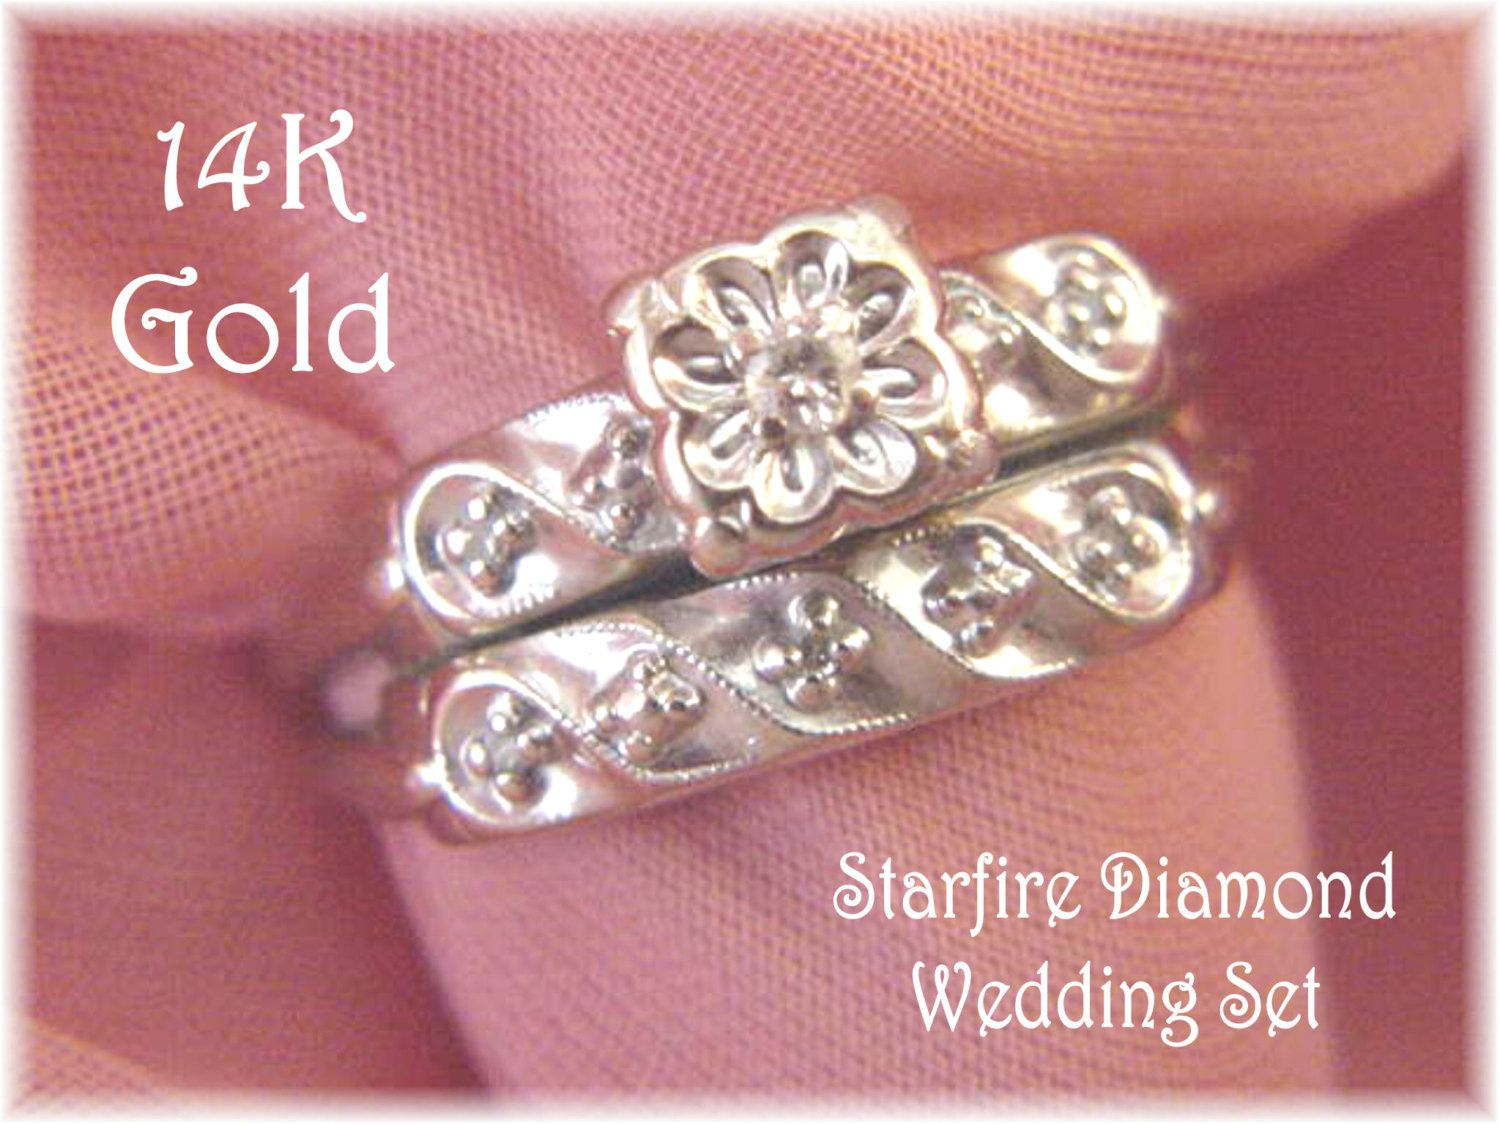 14K White Gold - Starfire Diamond Wedding Ring Set - Pennsylvania ...